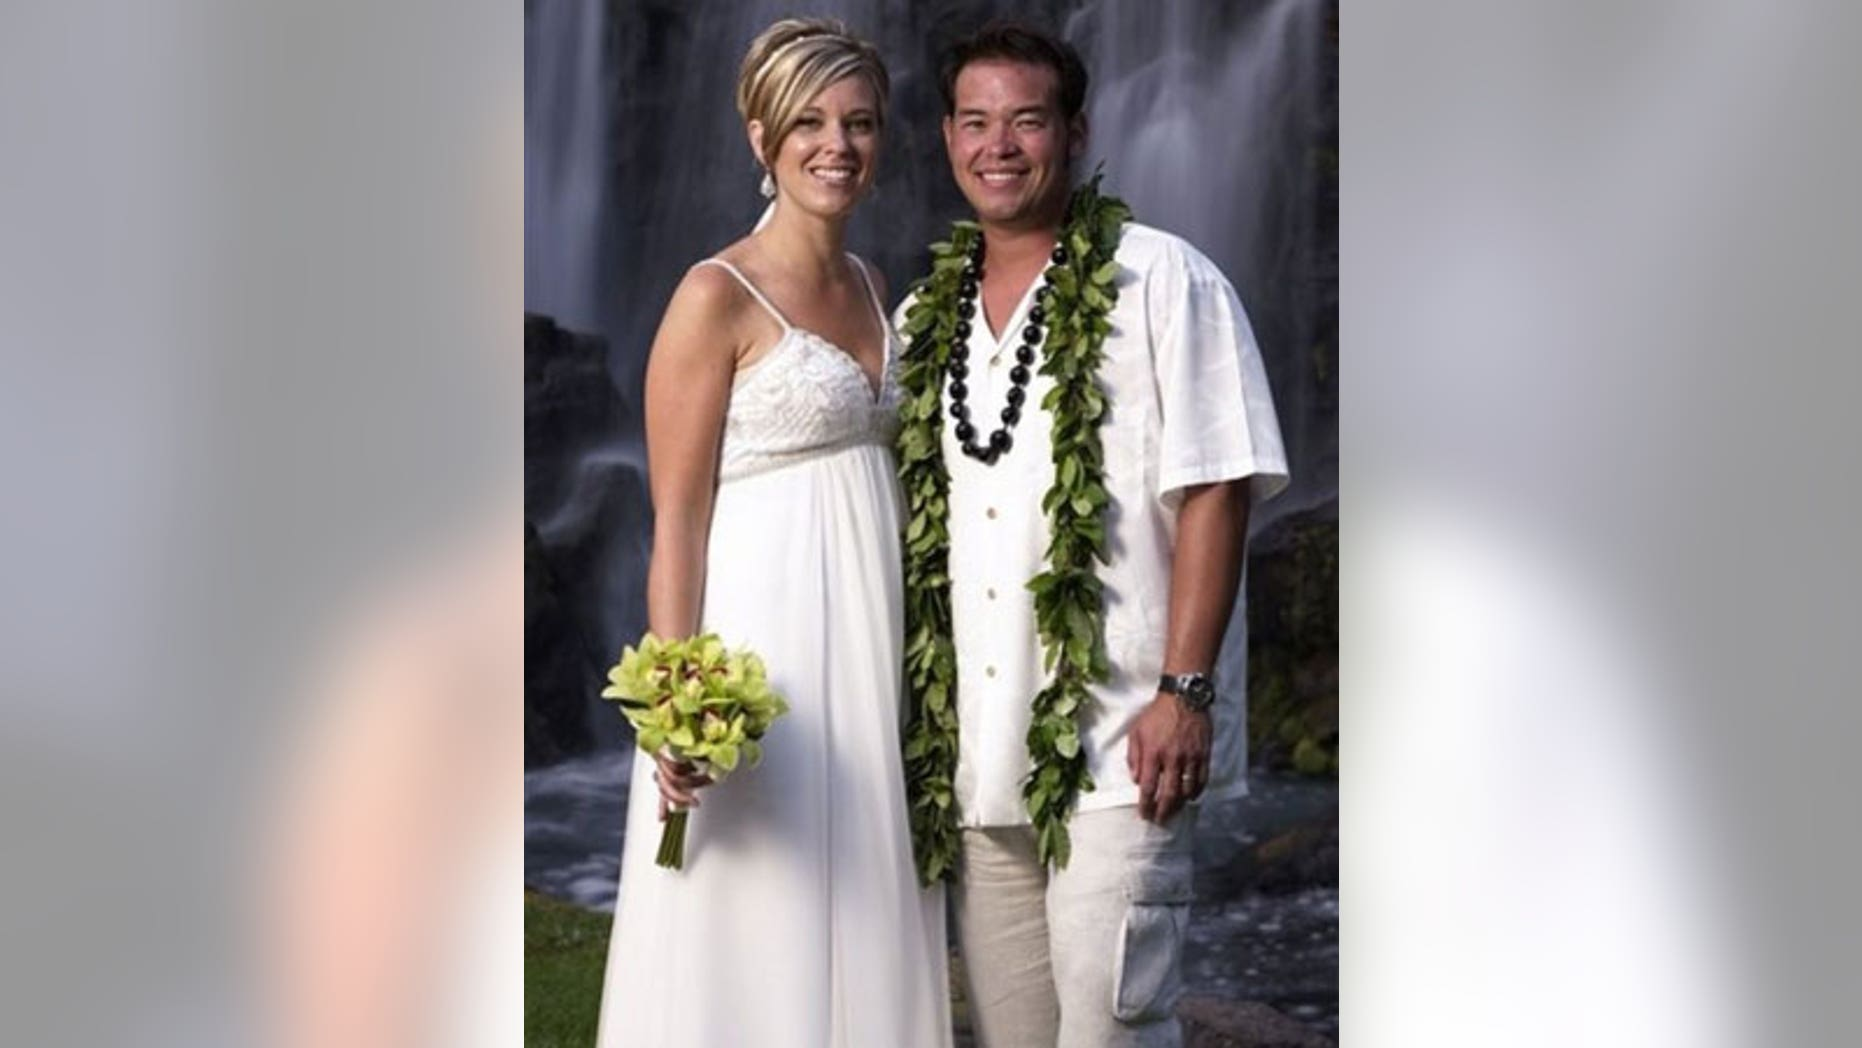 Jon and Kate Gosselin in happier times, shown here renewing their wedding vows in Hawaii in 2008.